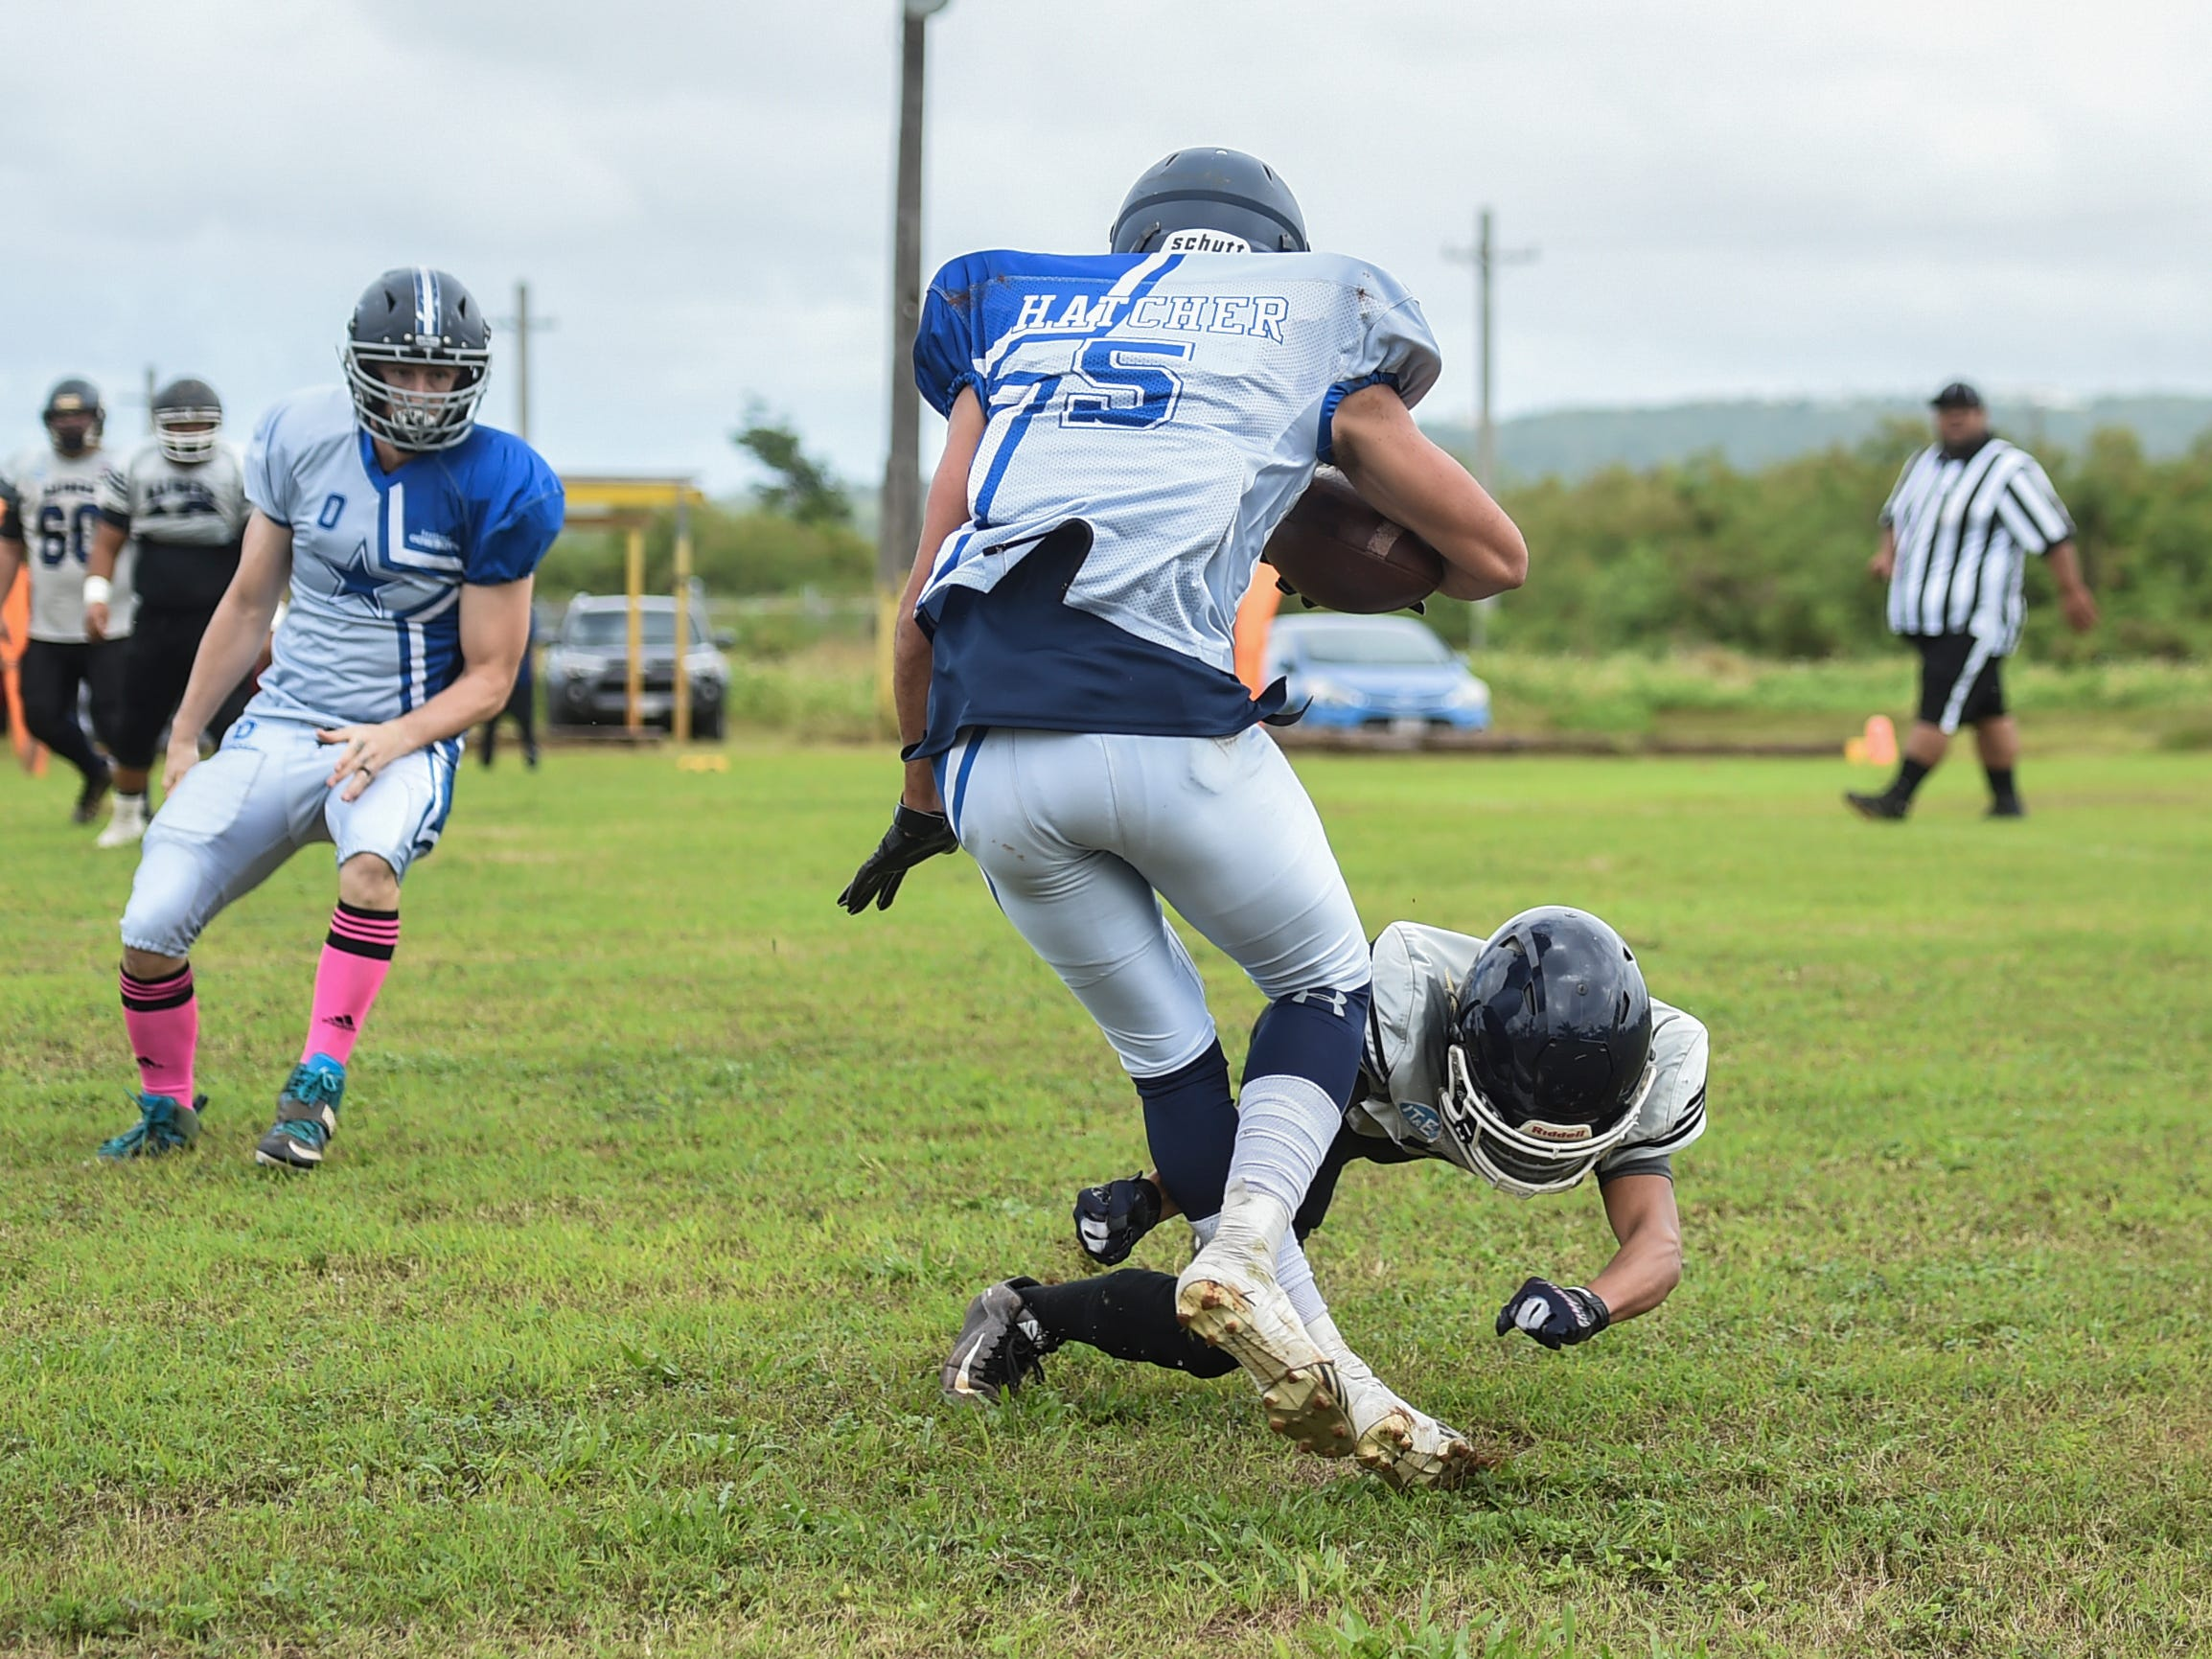 Logan Hatcher (5) of the Southern Cowboys avoids a tackle by a Guam Raiders player during their Budweiser Guahan Varsity Football League game at Eagles Field in Mangilao, Feb. 2, 2019.